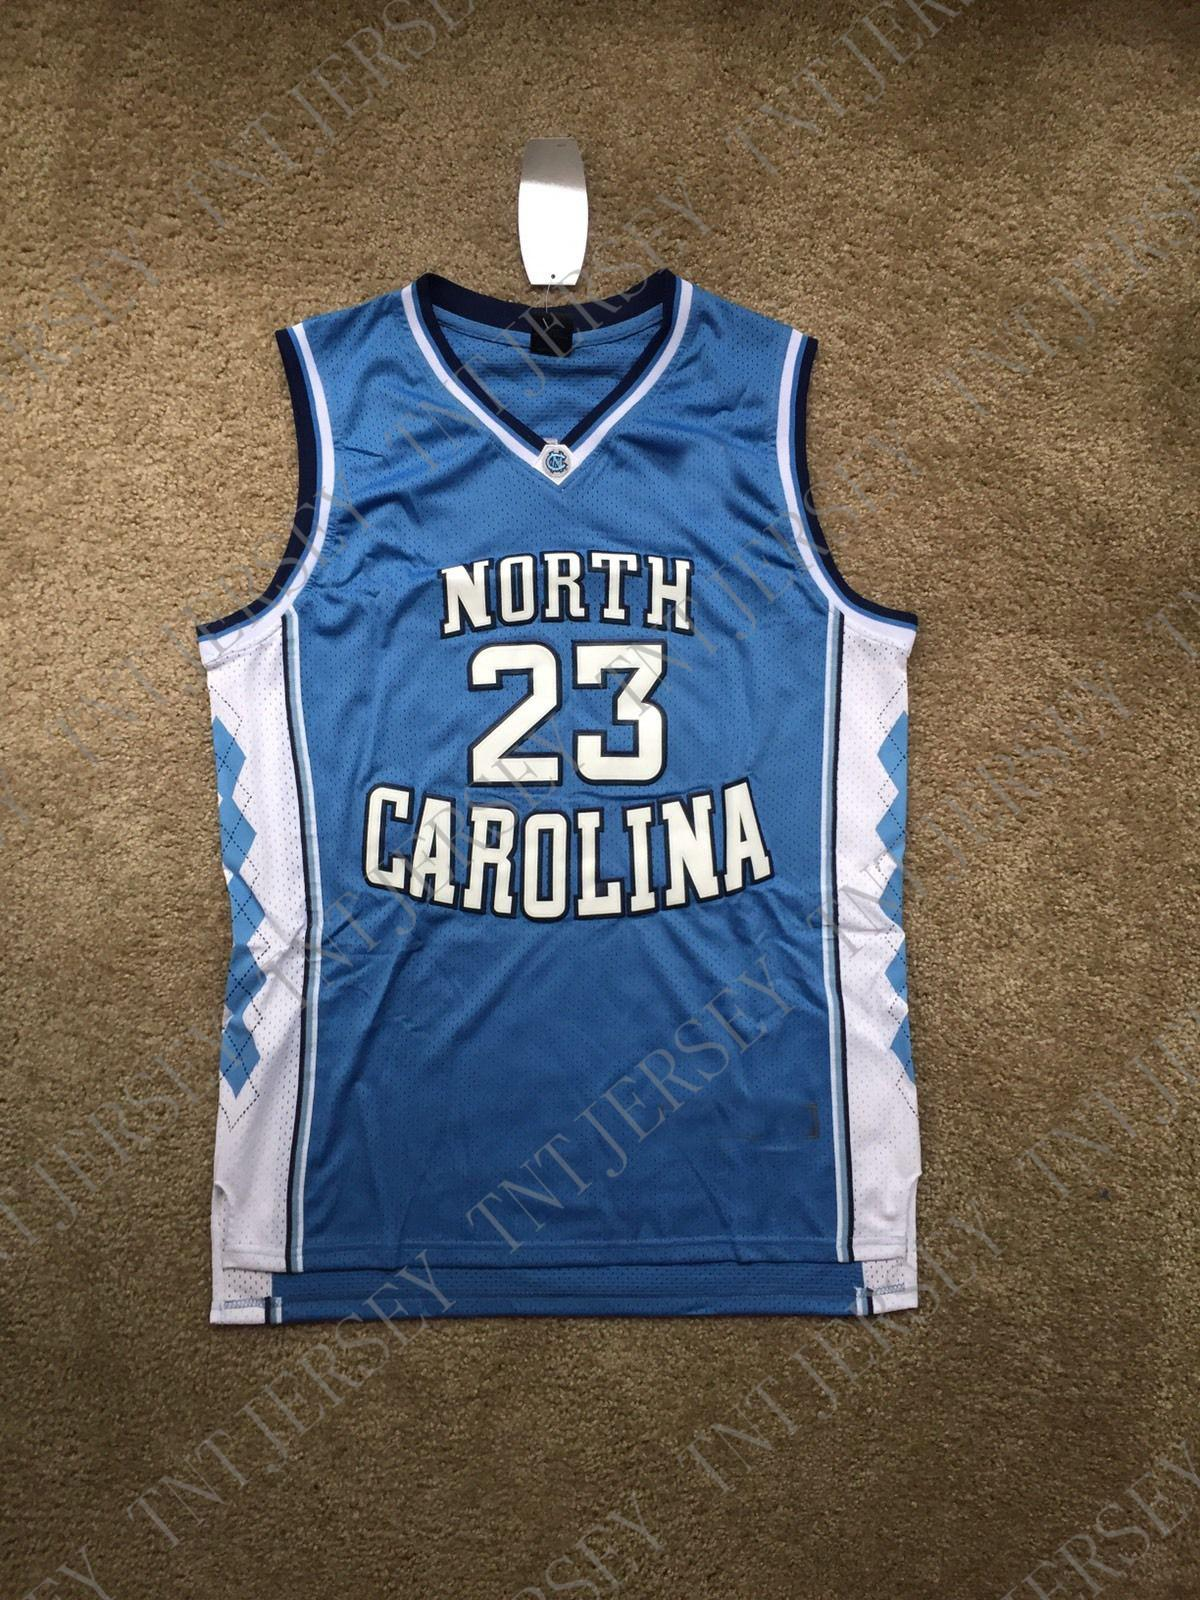 2019 Cheap Custom Michael North Carolina Tar Heels NCAA Basketball Jersey  Stitch Customize Any Number Name MEN WOMEN YOUTH XS 5XL From Tntjersey 0b3b3e9ed